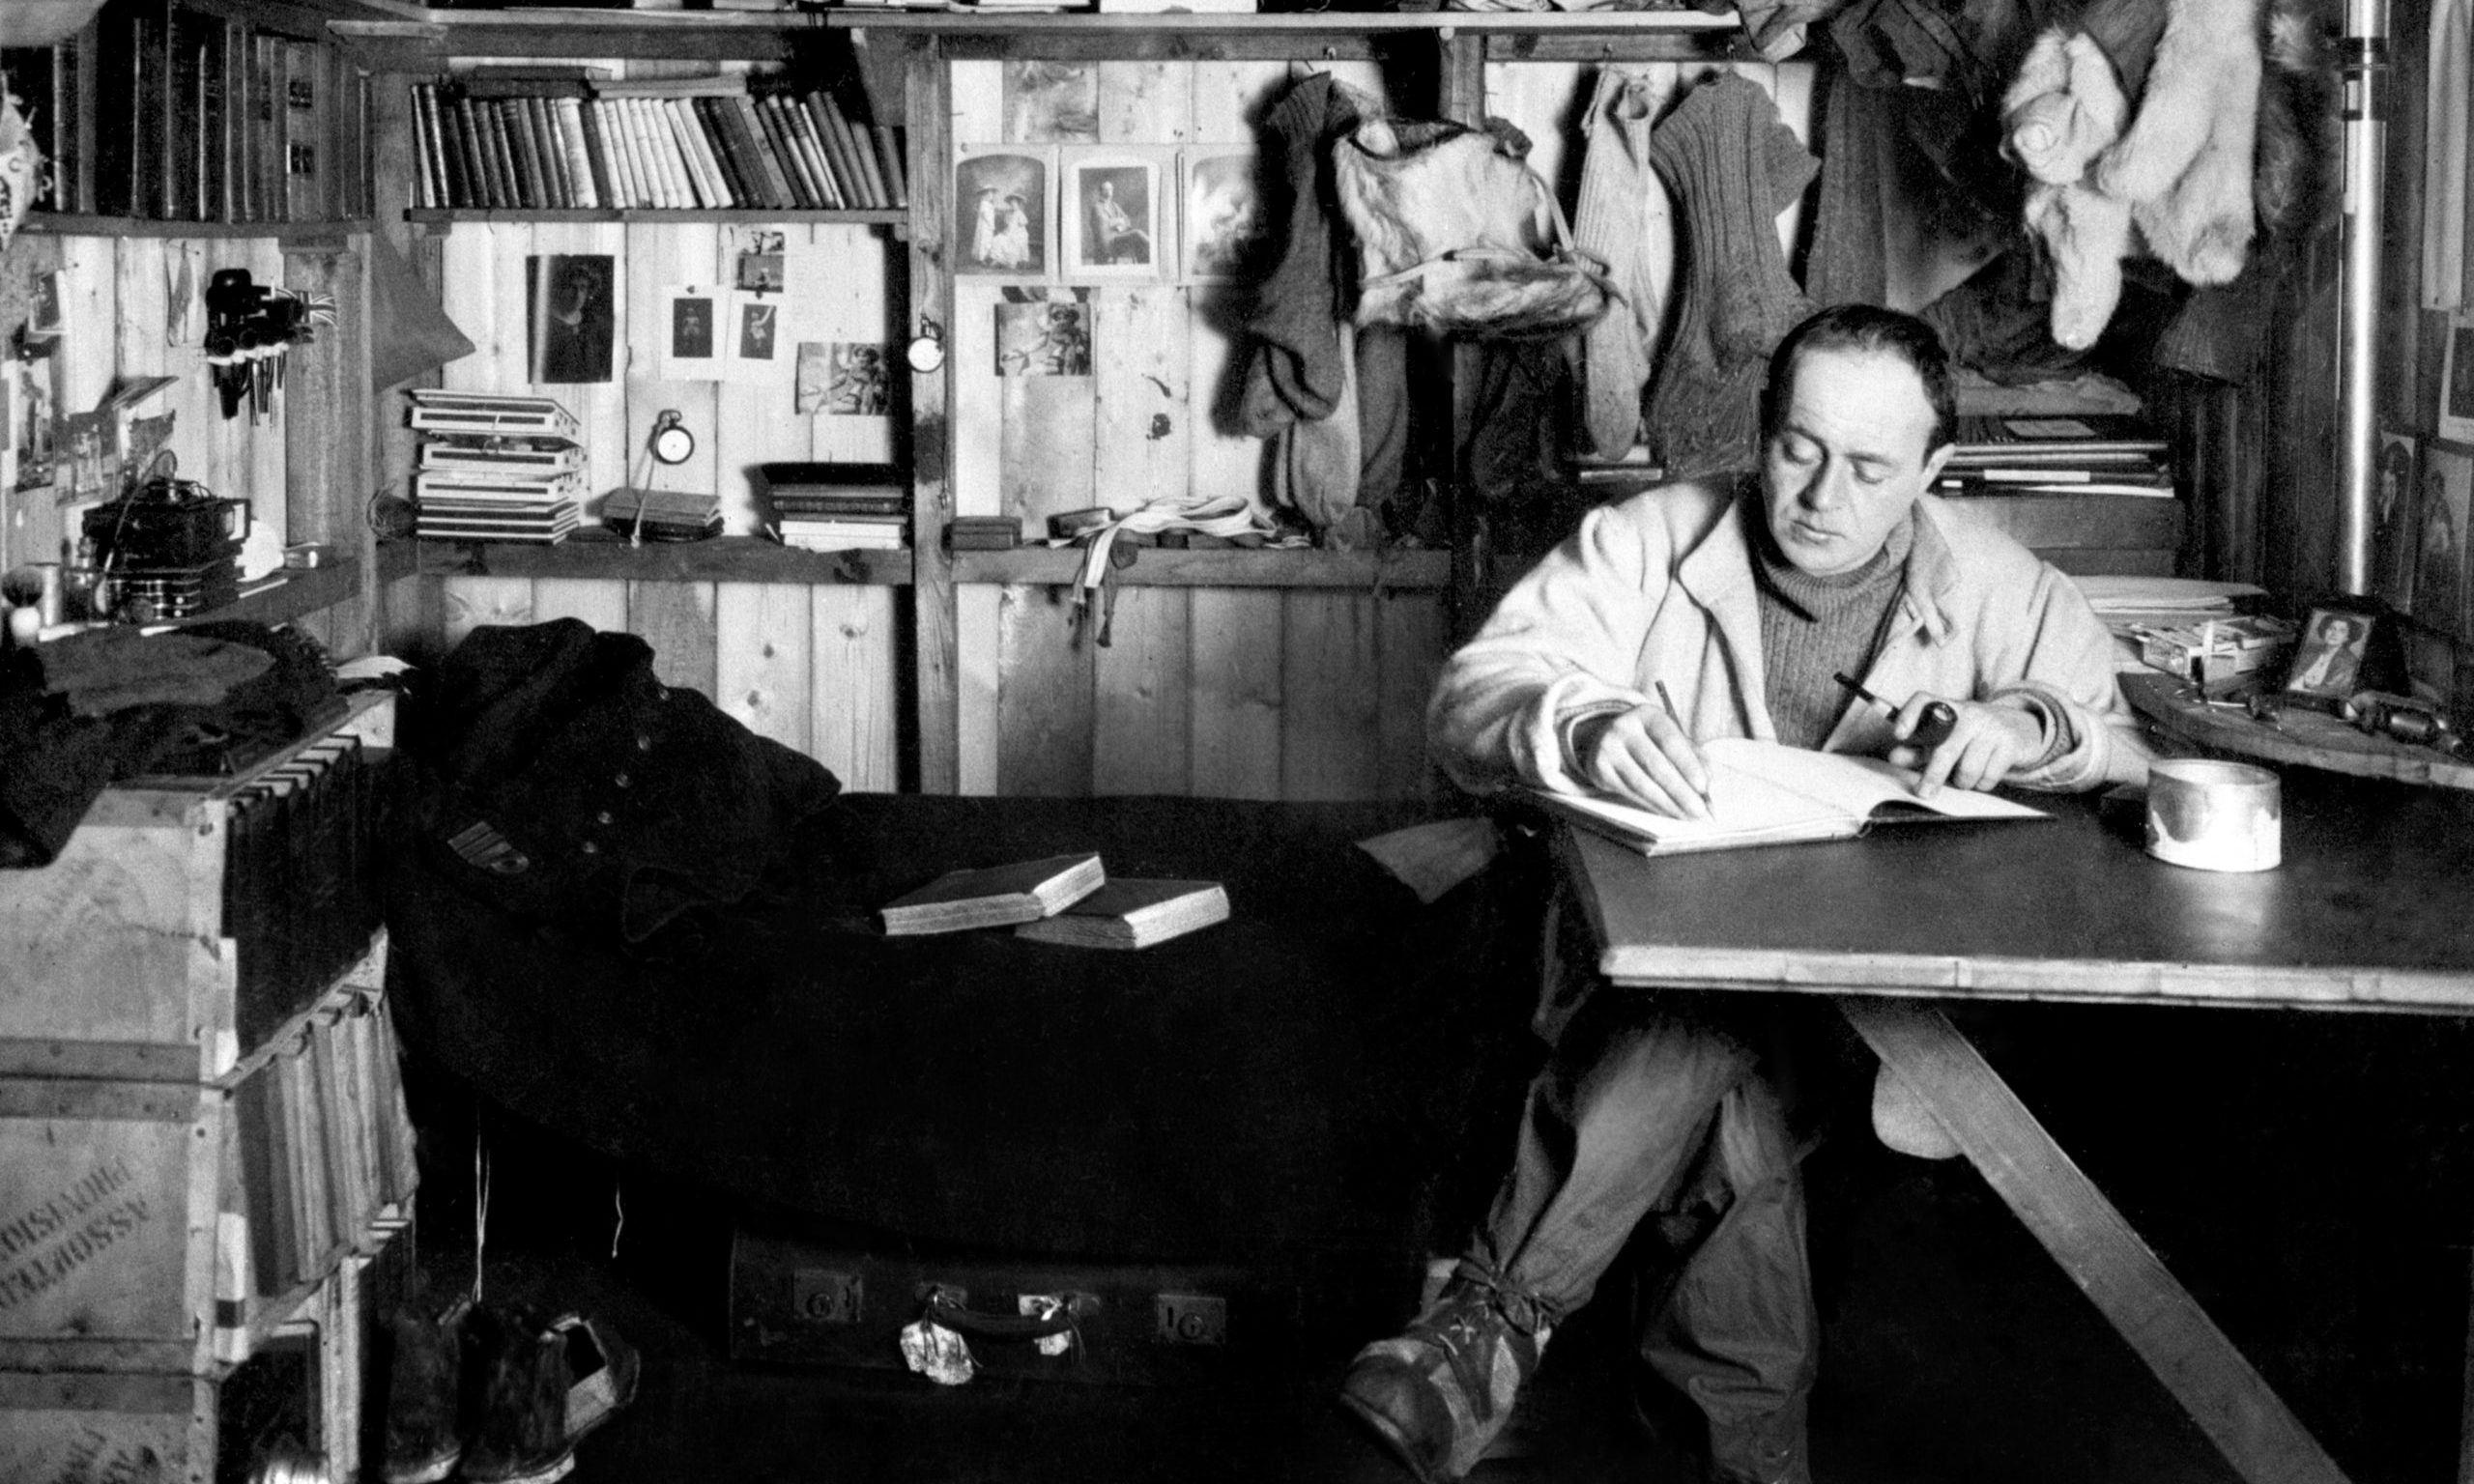 Captain Robert Falcon Scott writing at a table in his quarters (known as his 'den') at the British base camp in Antarctica.